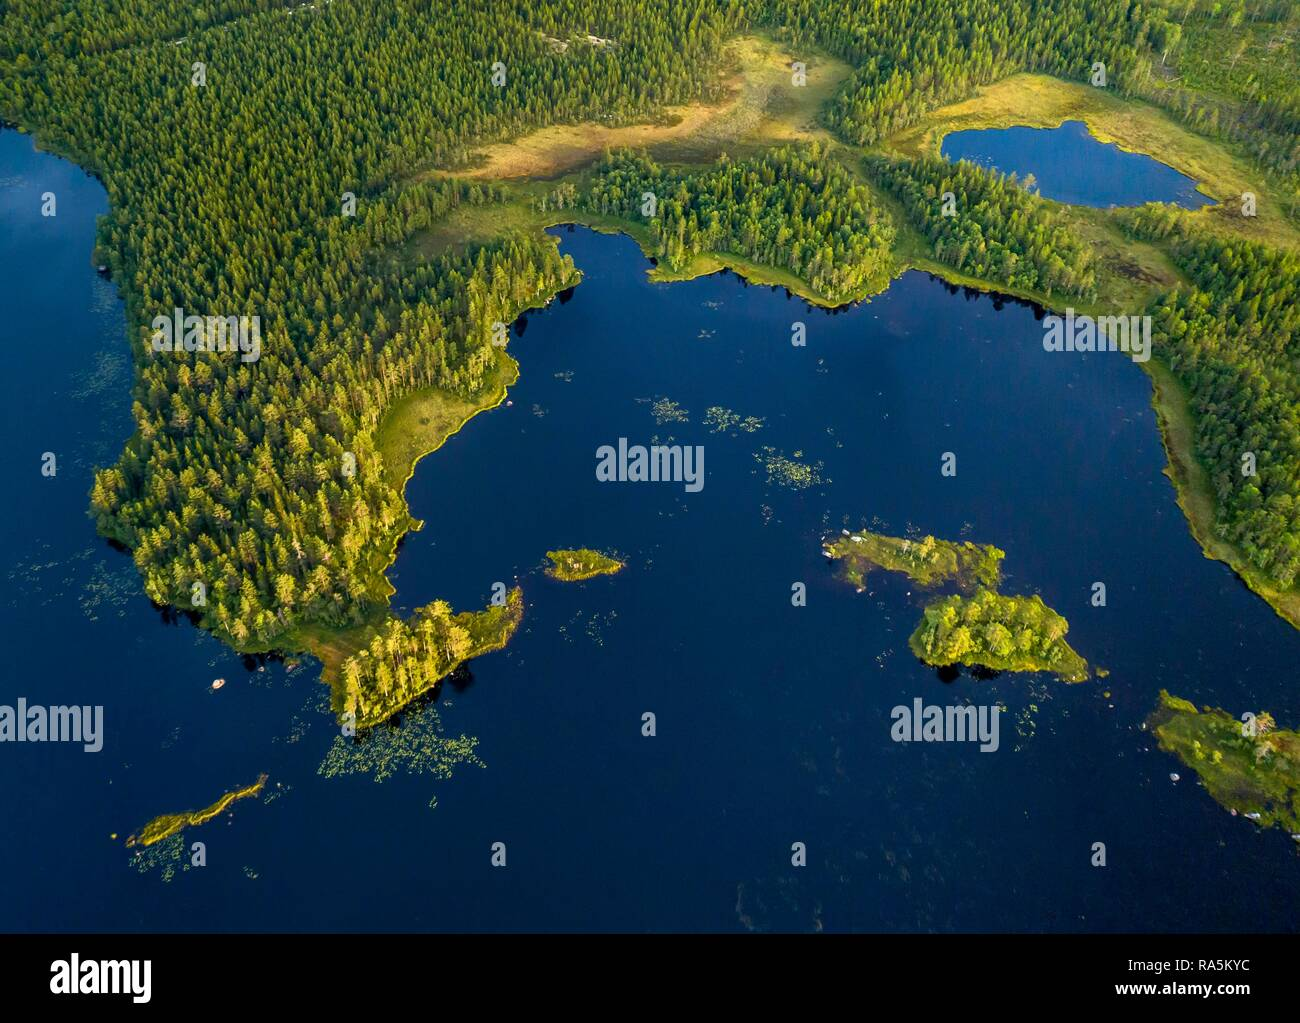 Drone shot, boreal, arctic conifers in wetland at the lake with small islands, Jävre, Norrbottens län, Sweden Stock Photo